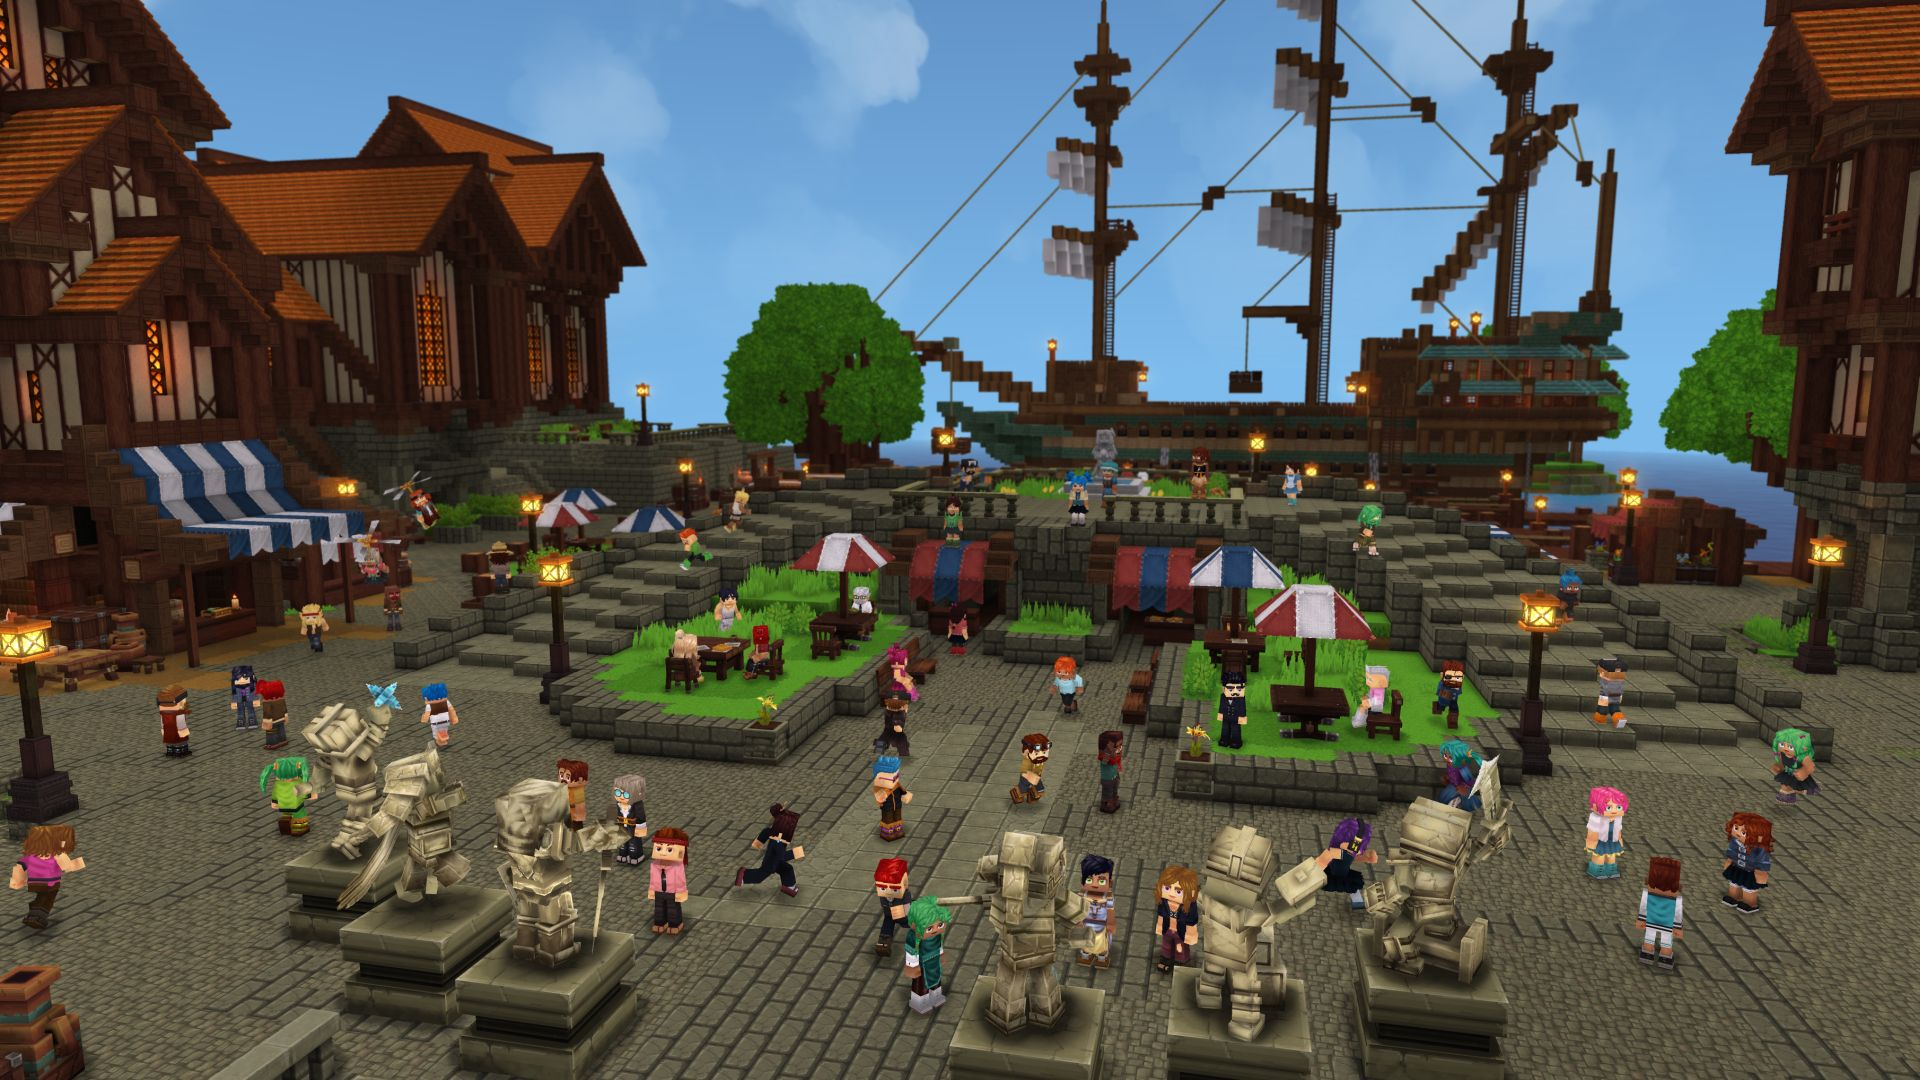 hytale town center - Hytale